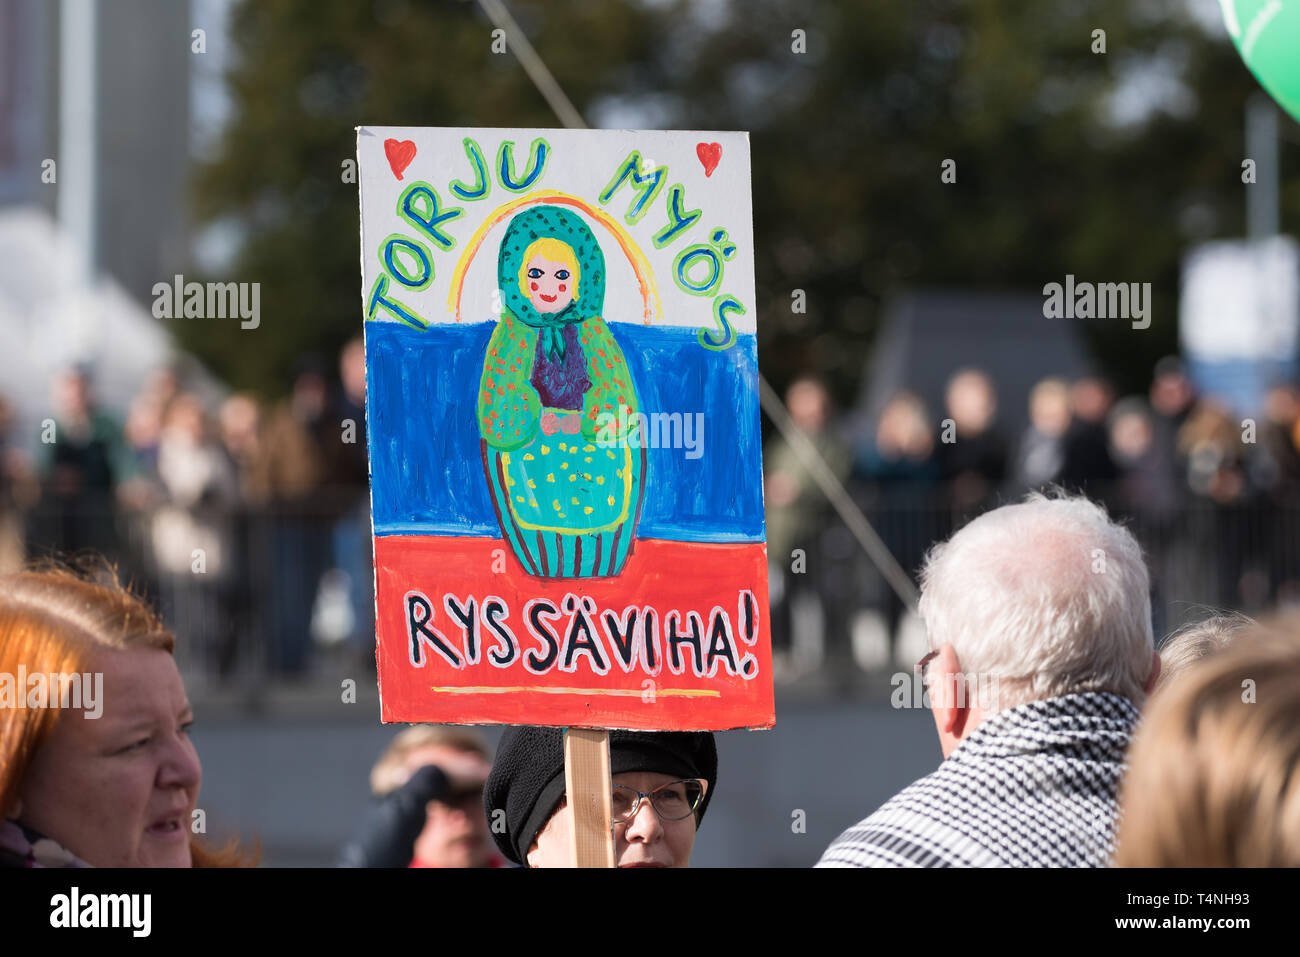 Helsinki, Finland - September 24, 2016: Peli poikki - Rikotaan hiljaisuus - protest rally against racism and right wing extremist violence in Helsinki - Stock Image